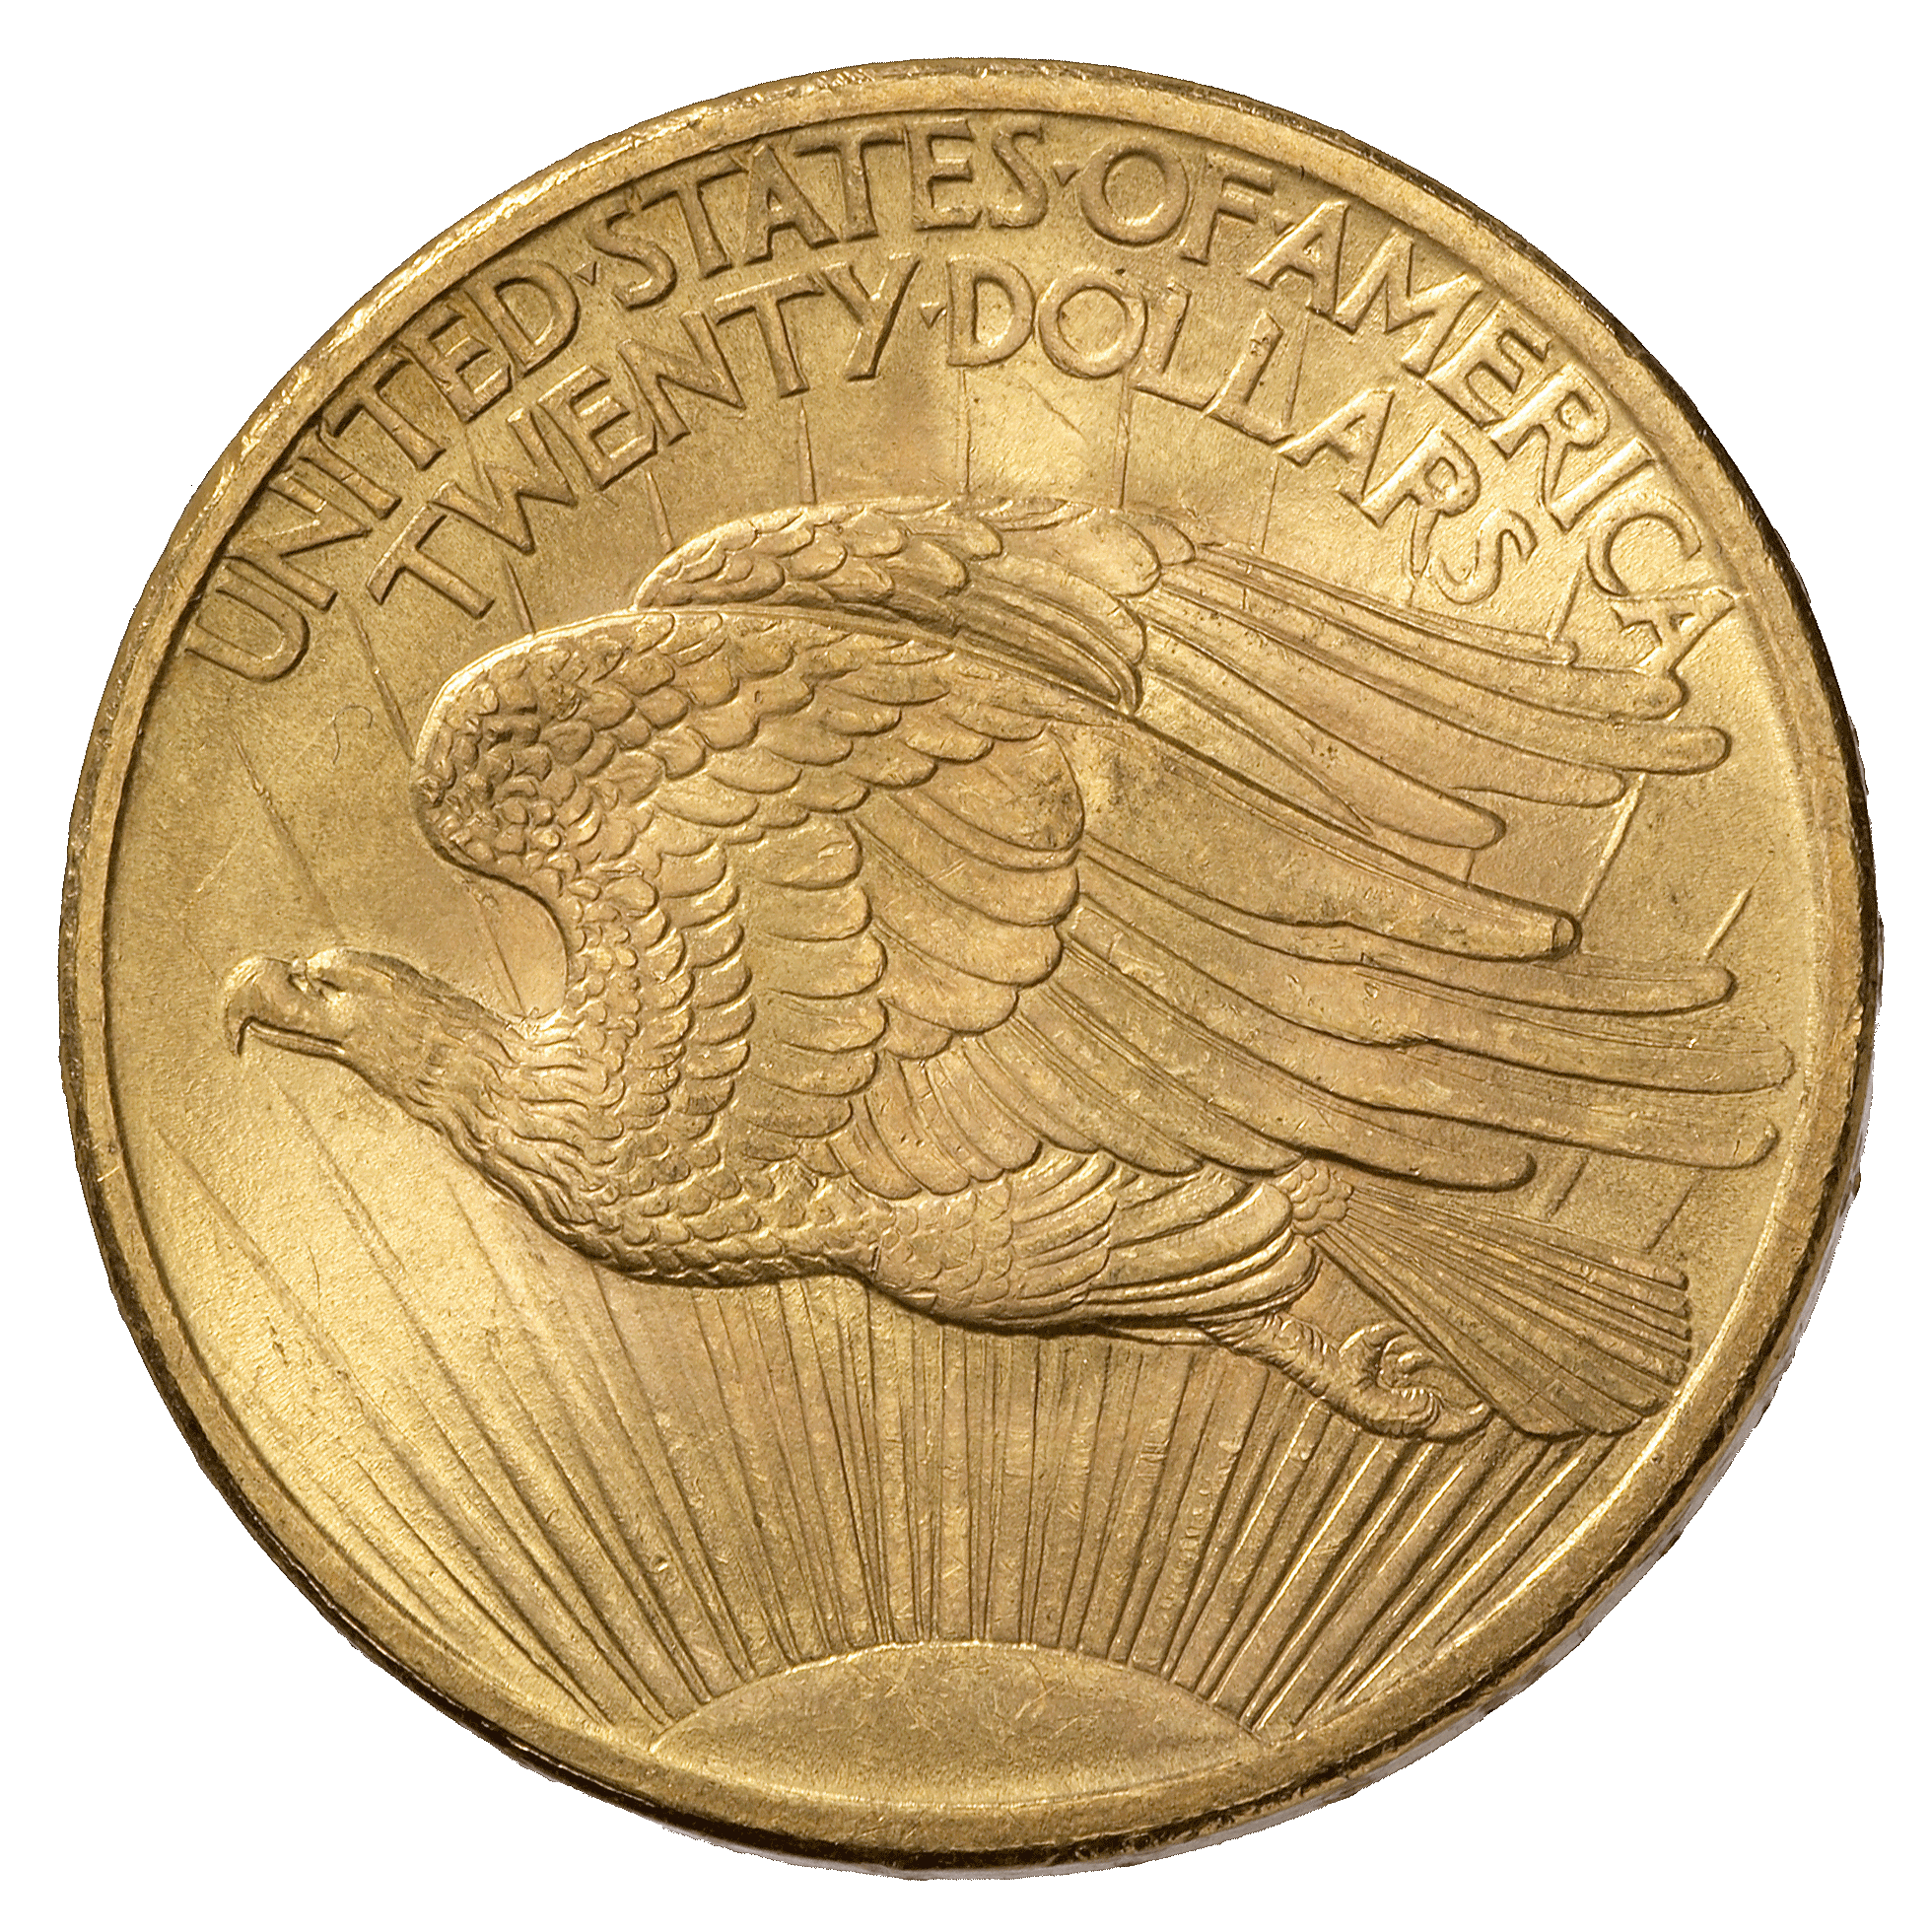 United States of America, 20 Dollar 1908 (reverse)